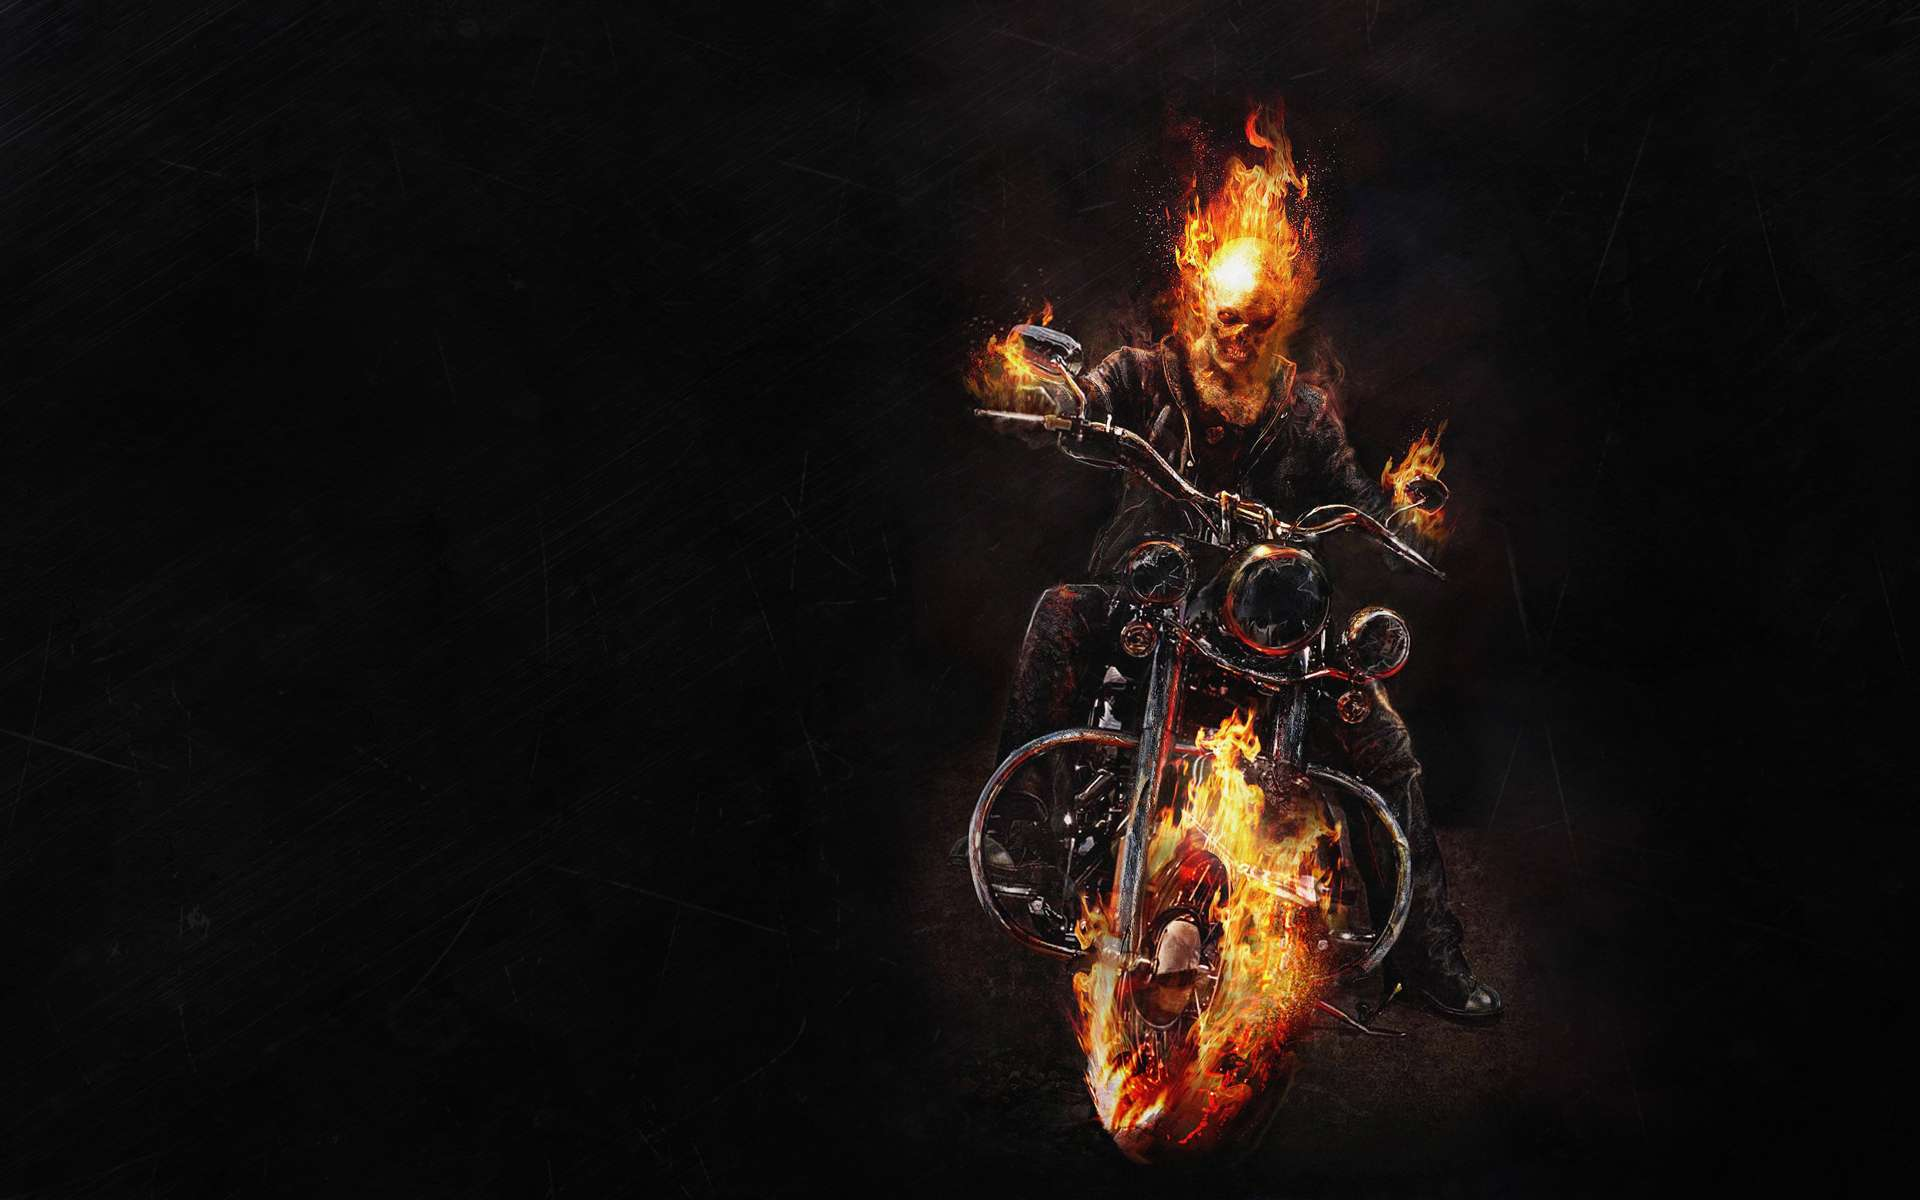 Ghost rider 3 wallpapers hd wallpapers - Ghost wallpapers for desktop hd ...